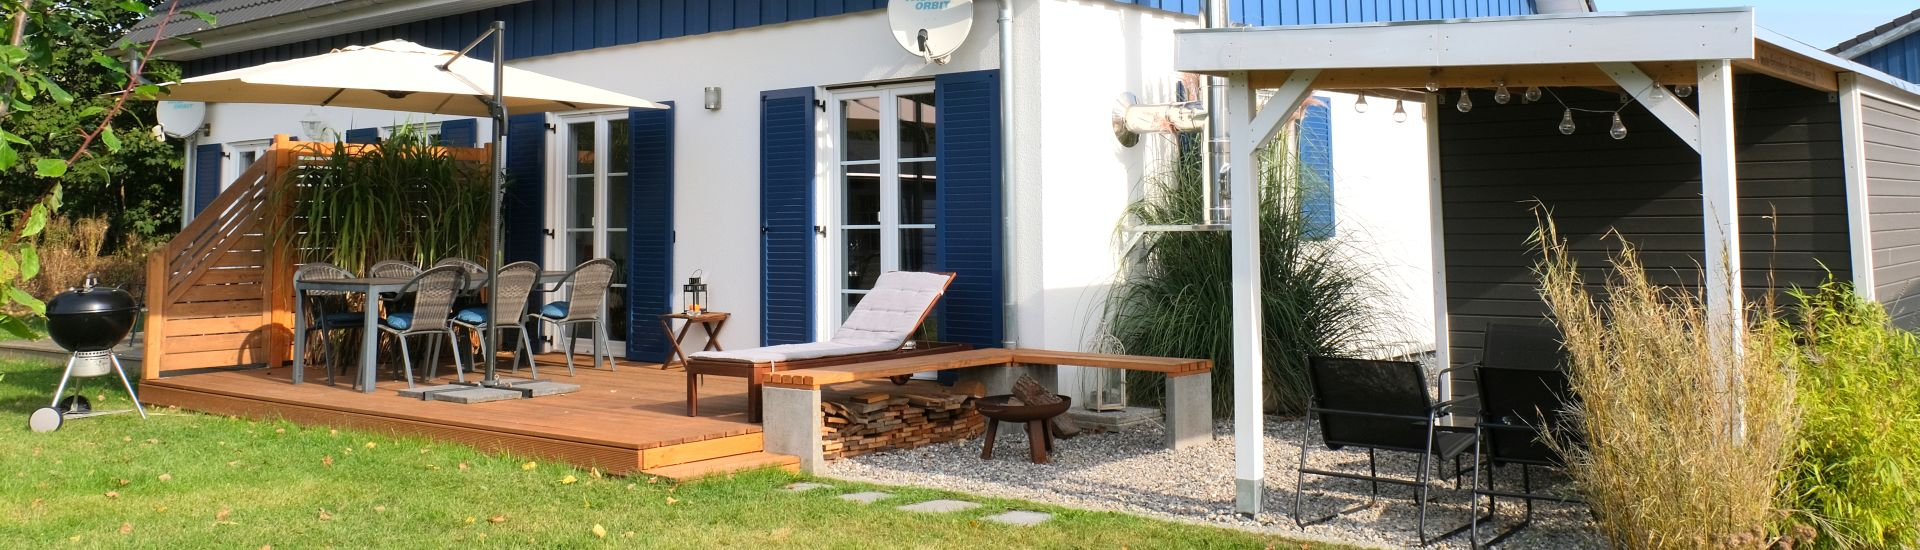 Holiday Home 'Fraeulein Meer - Miss Sea' - Your holiday home on the island of Ruegen.